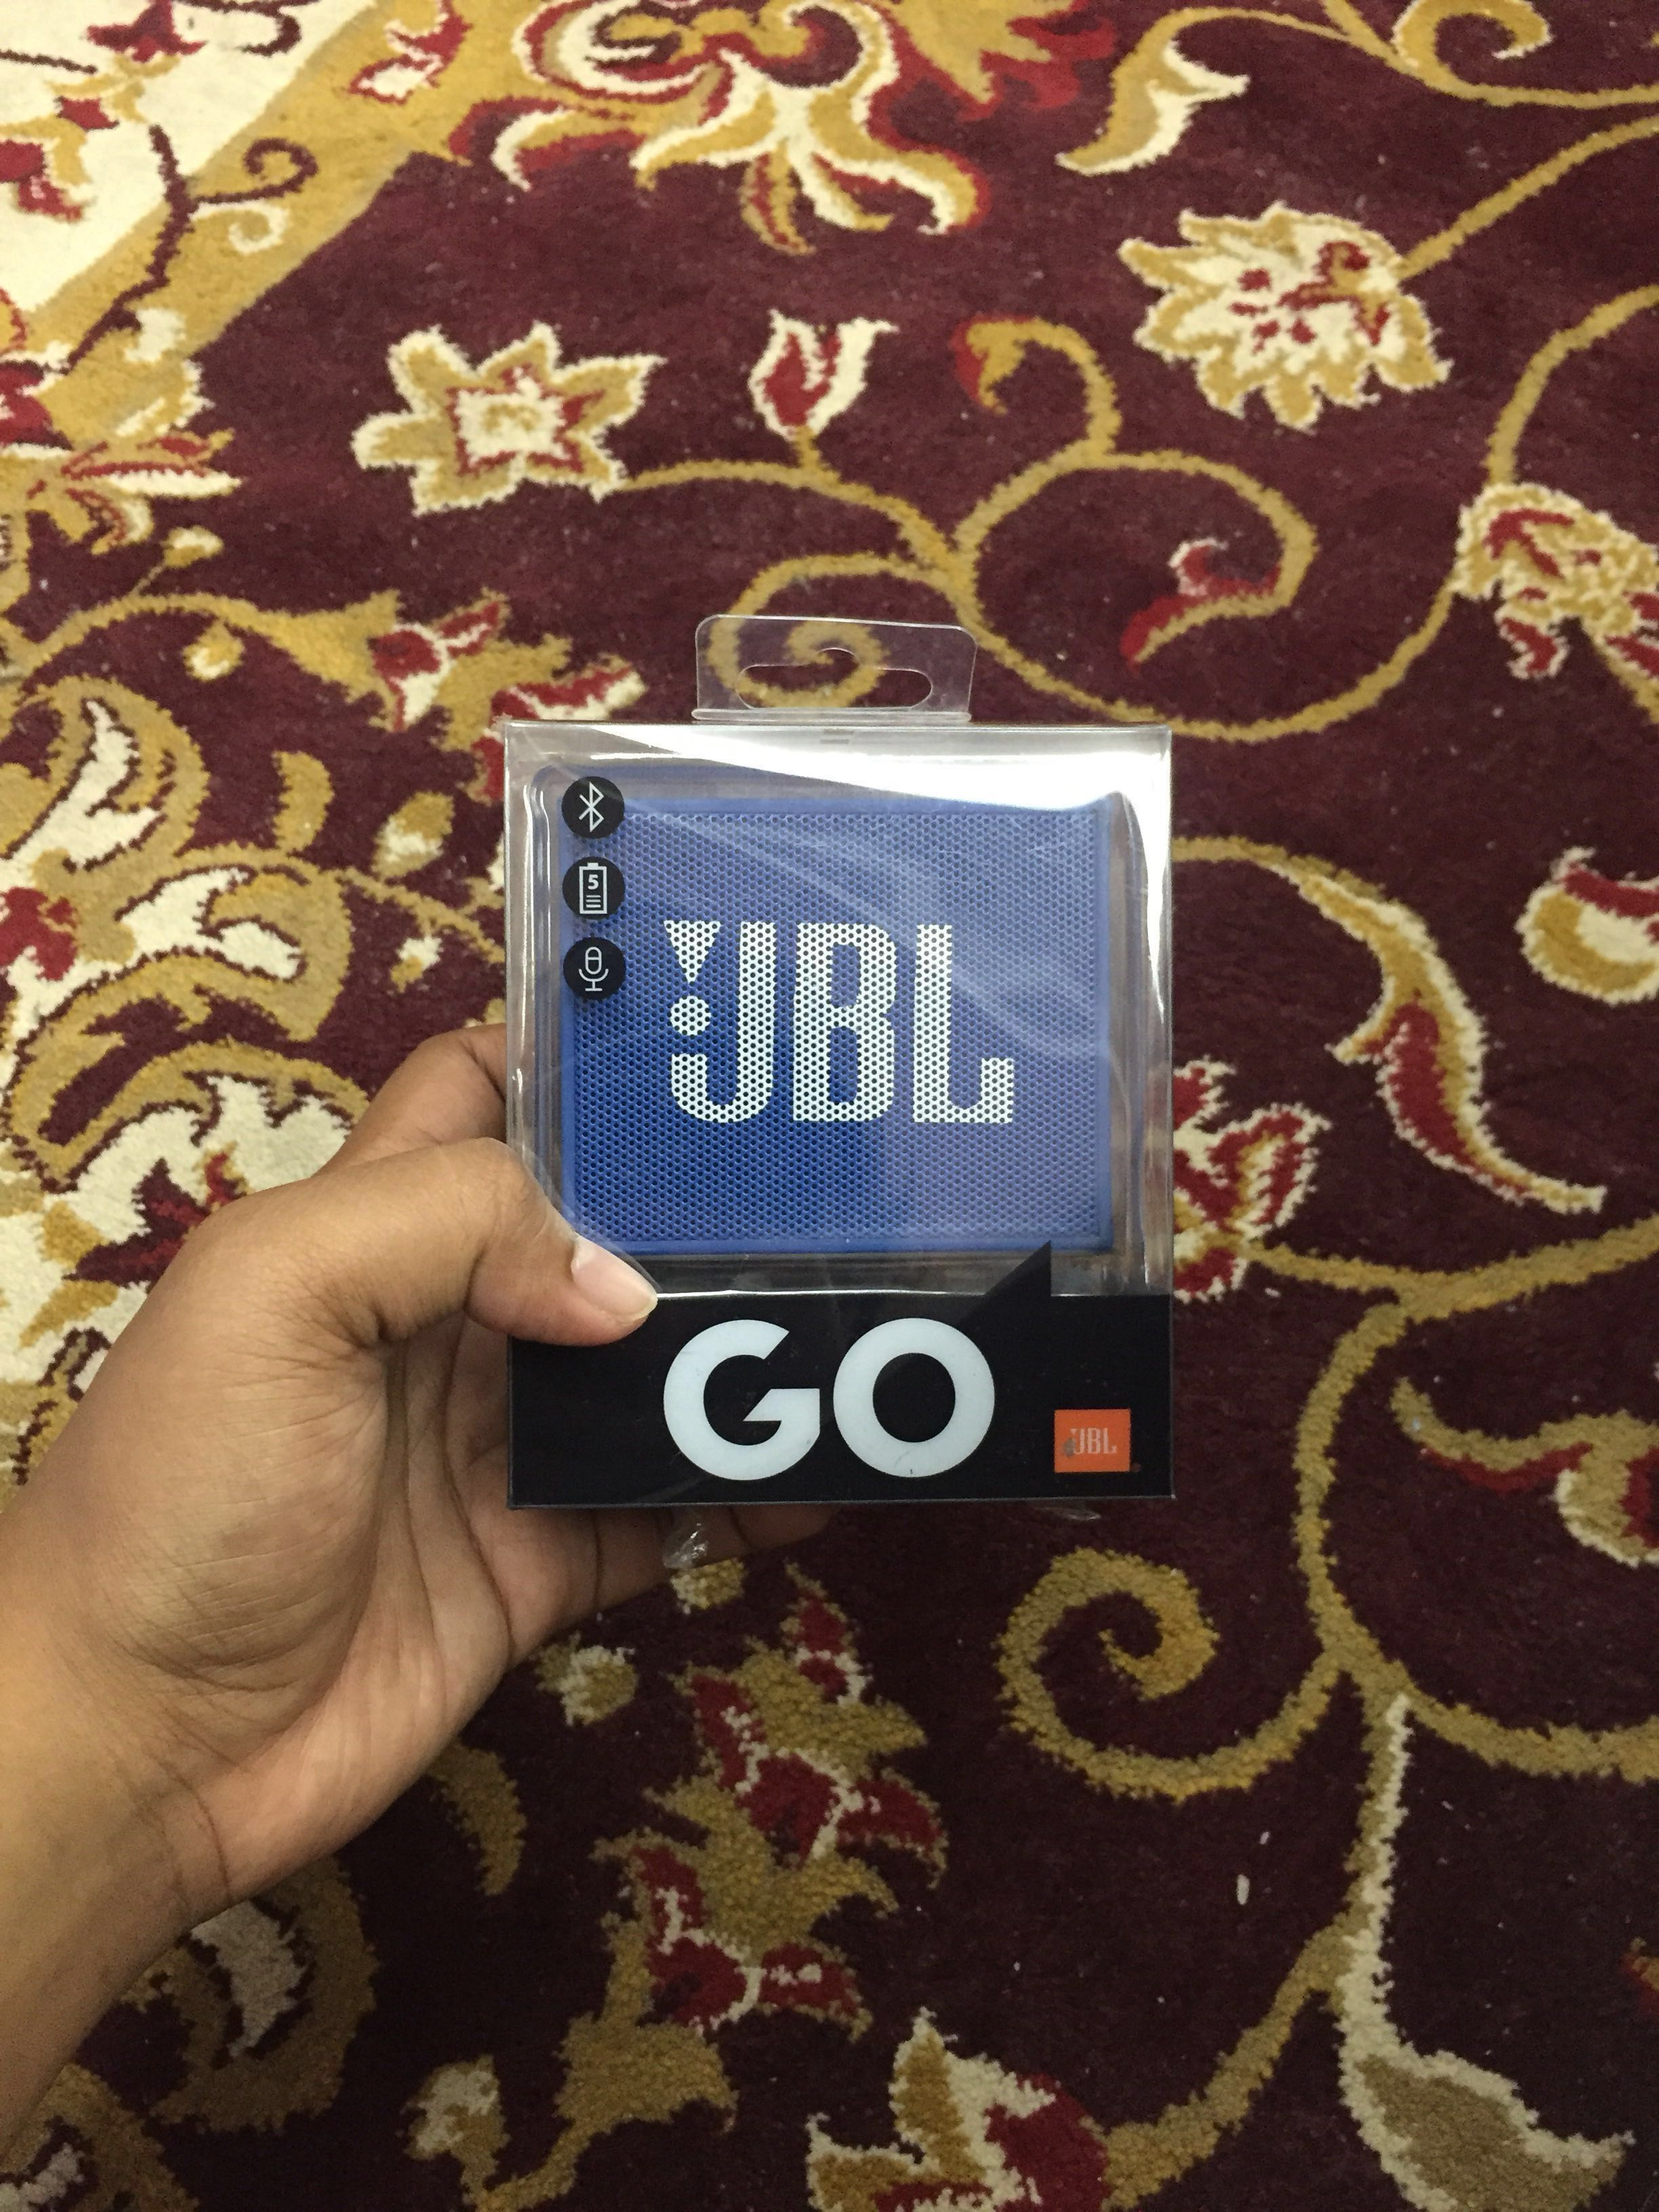 Jbl Go Portable Bluetooth Speaker Under90 Electronics Audio On Flip 3 Splashproof Merah Carousell